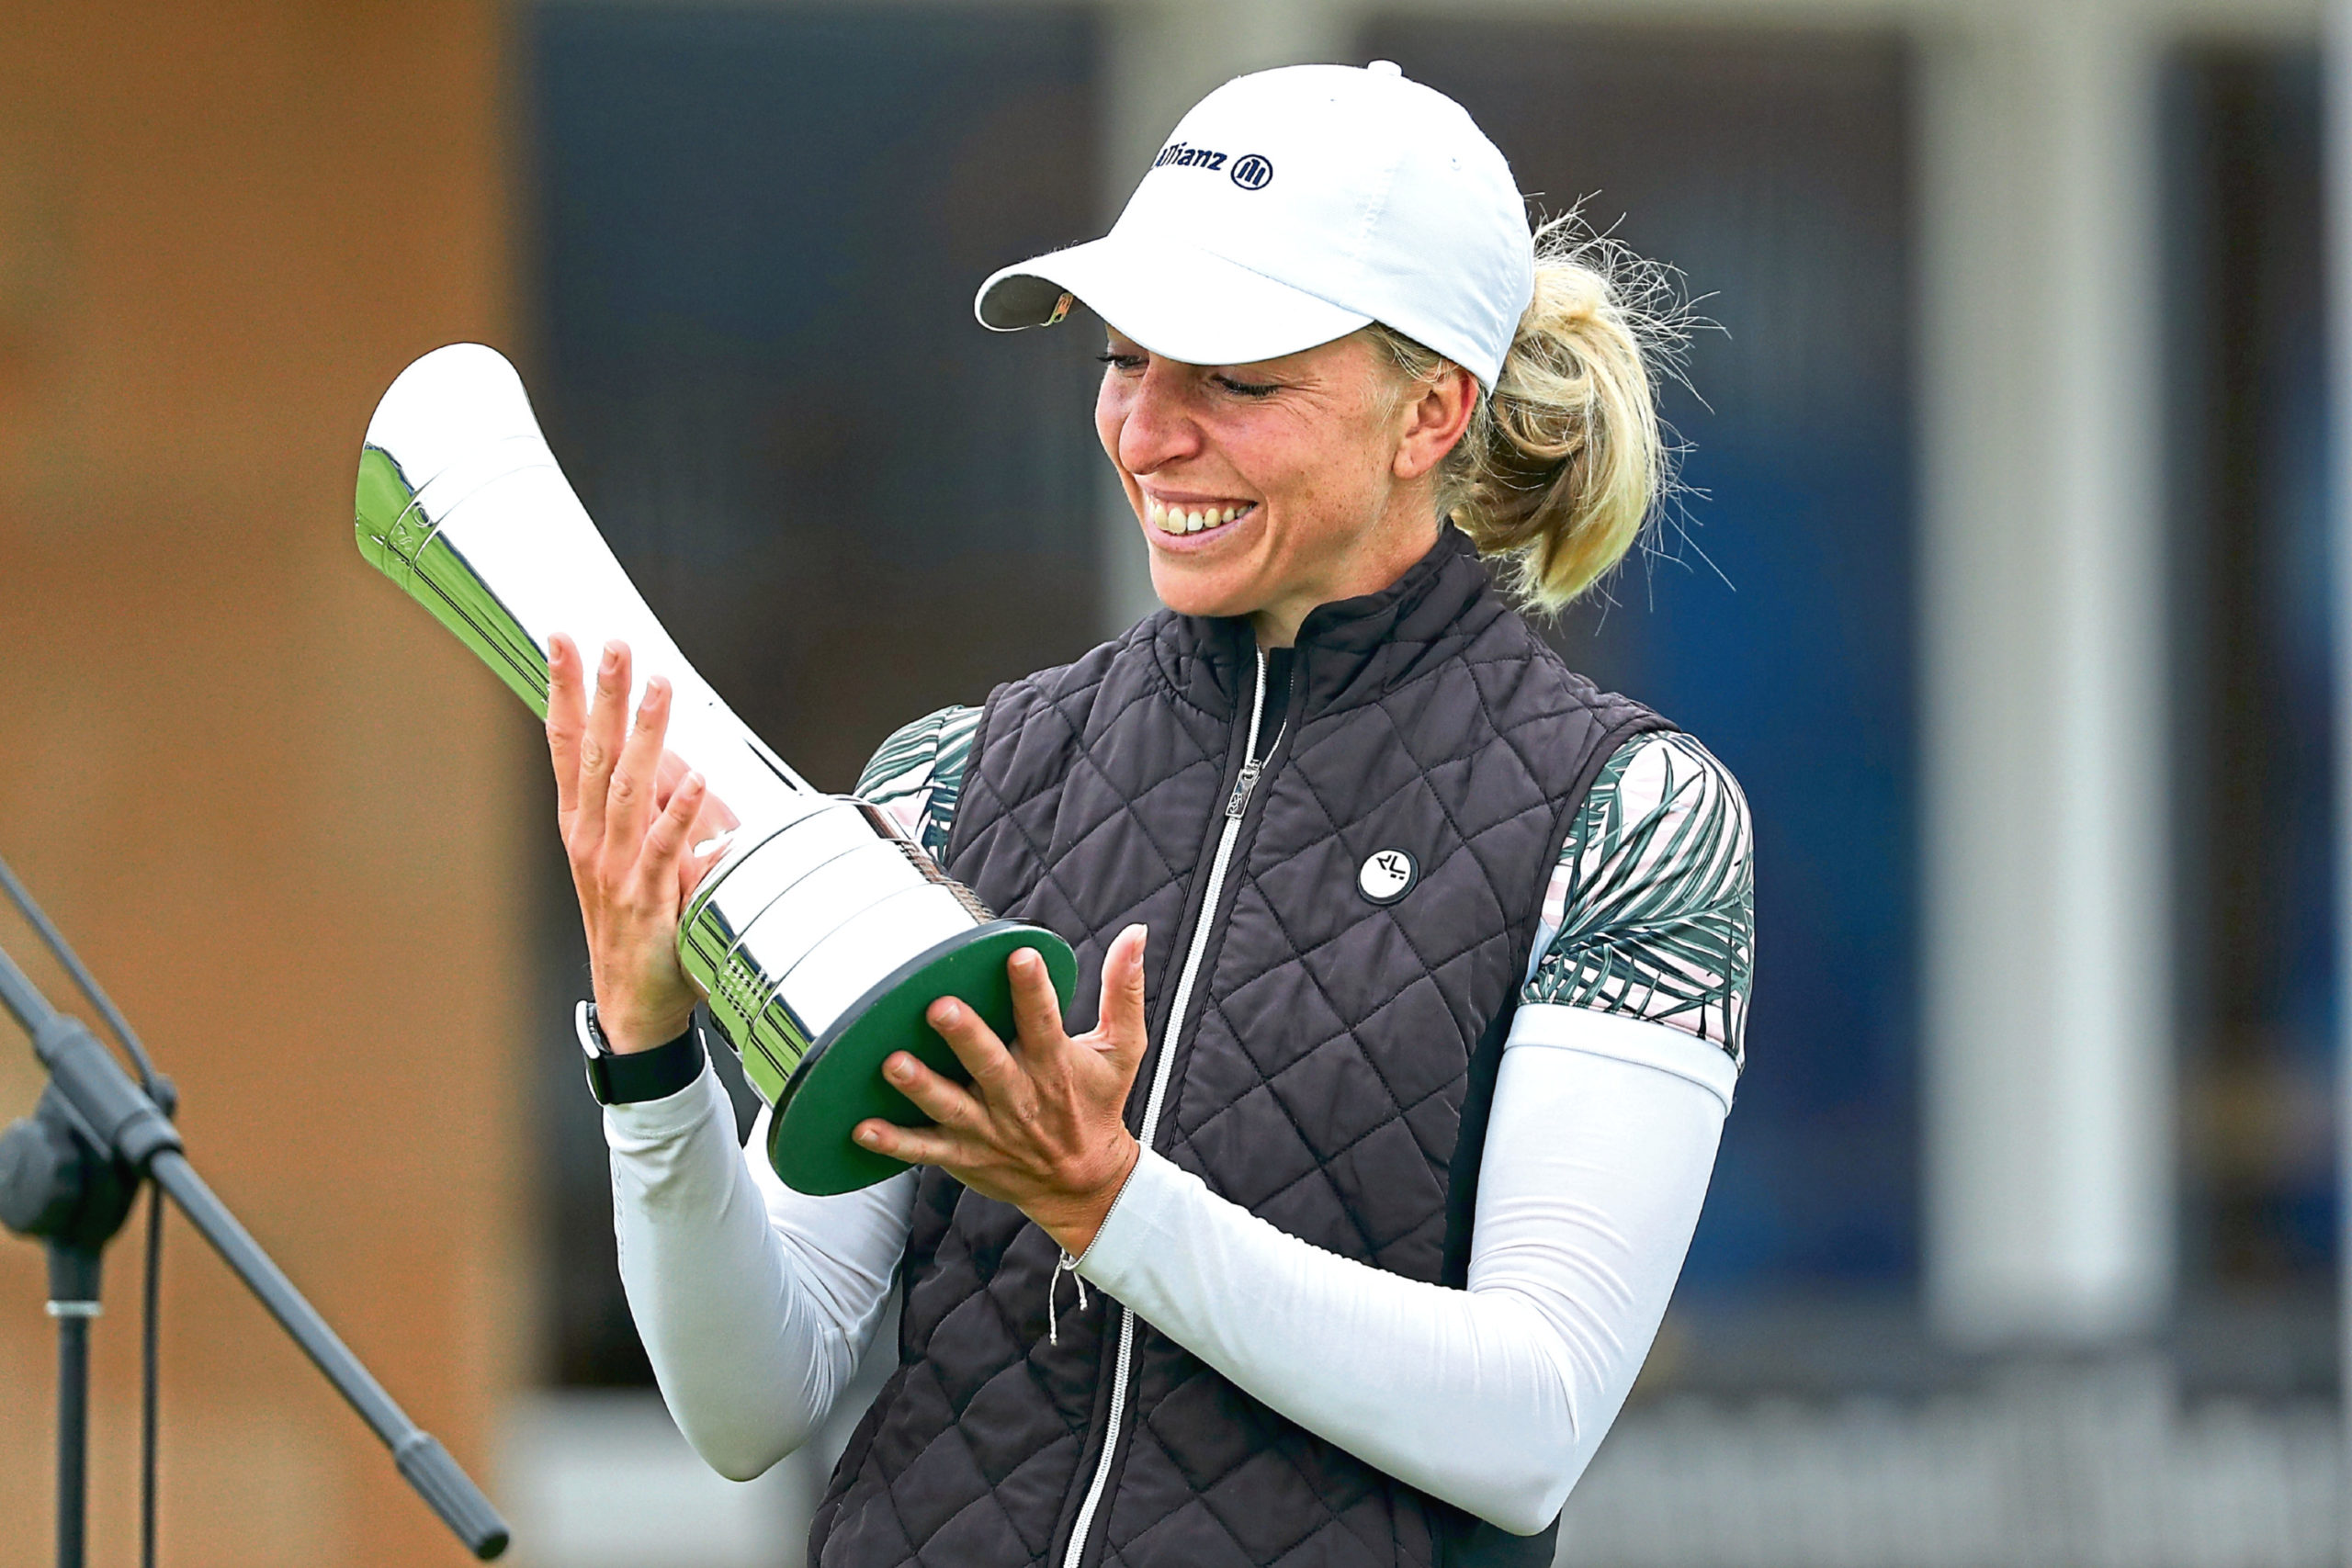 Popov